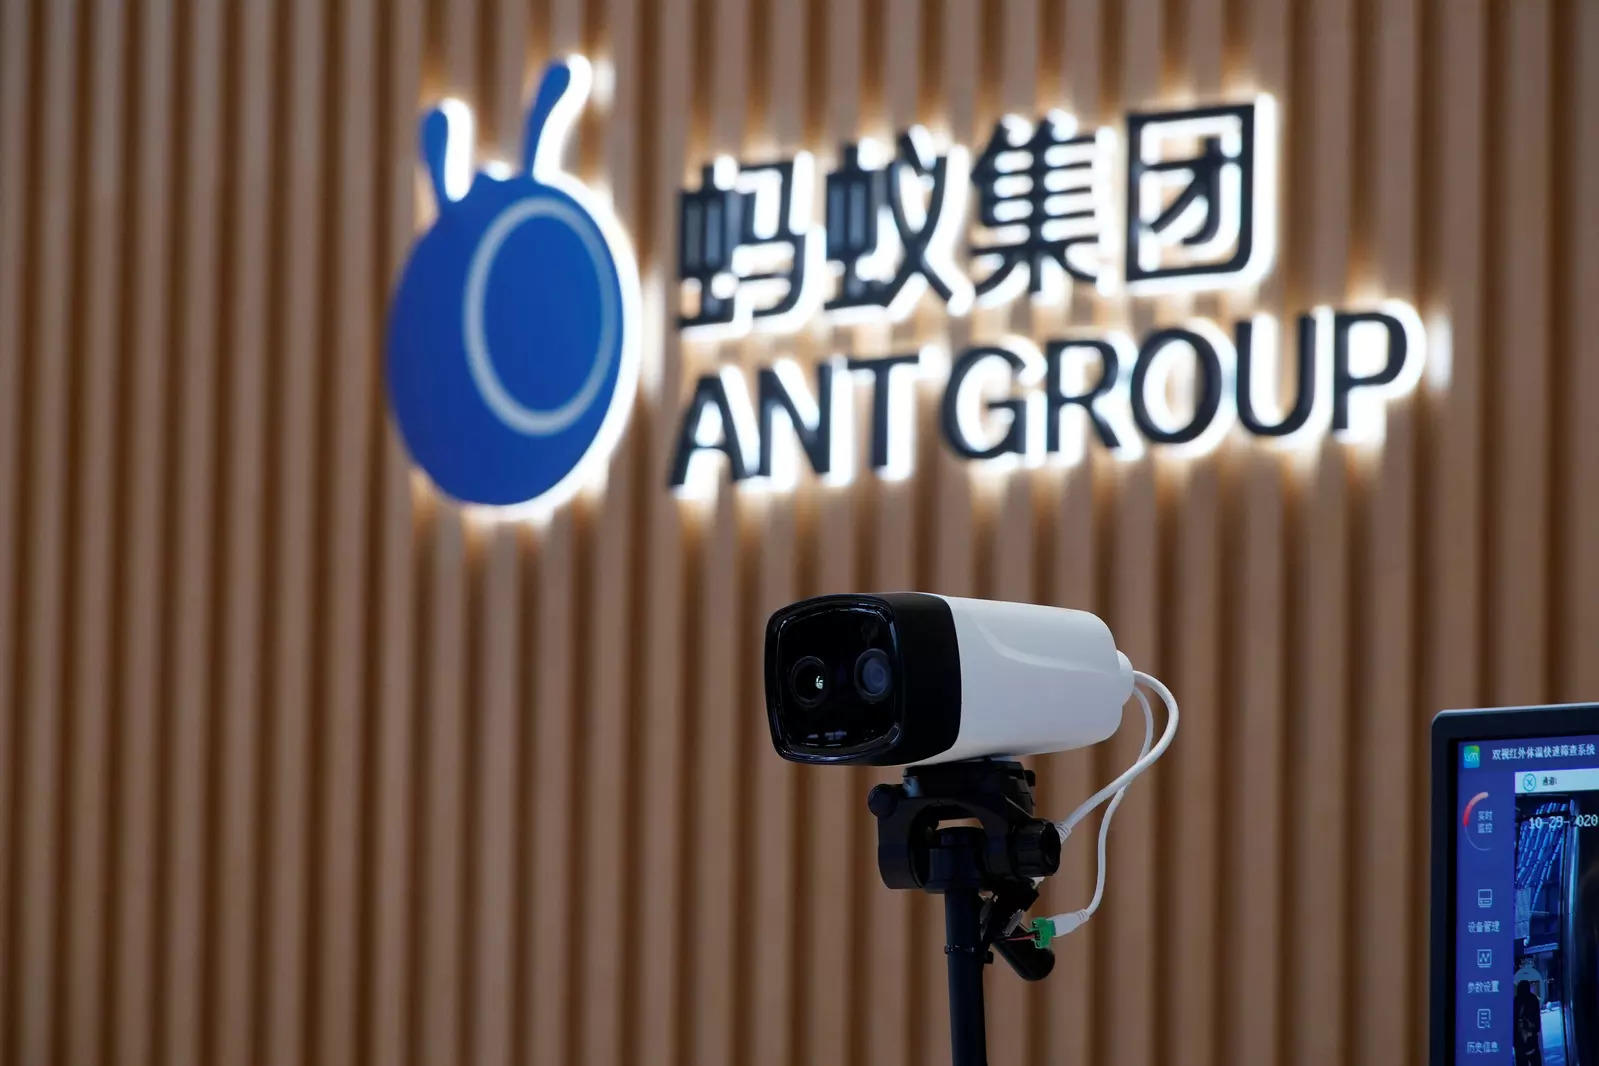 Ant Group reaches deal with China regulators on restructuring